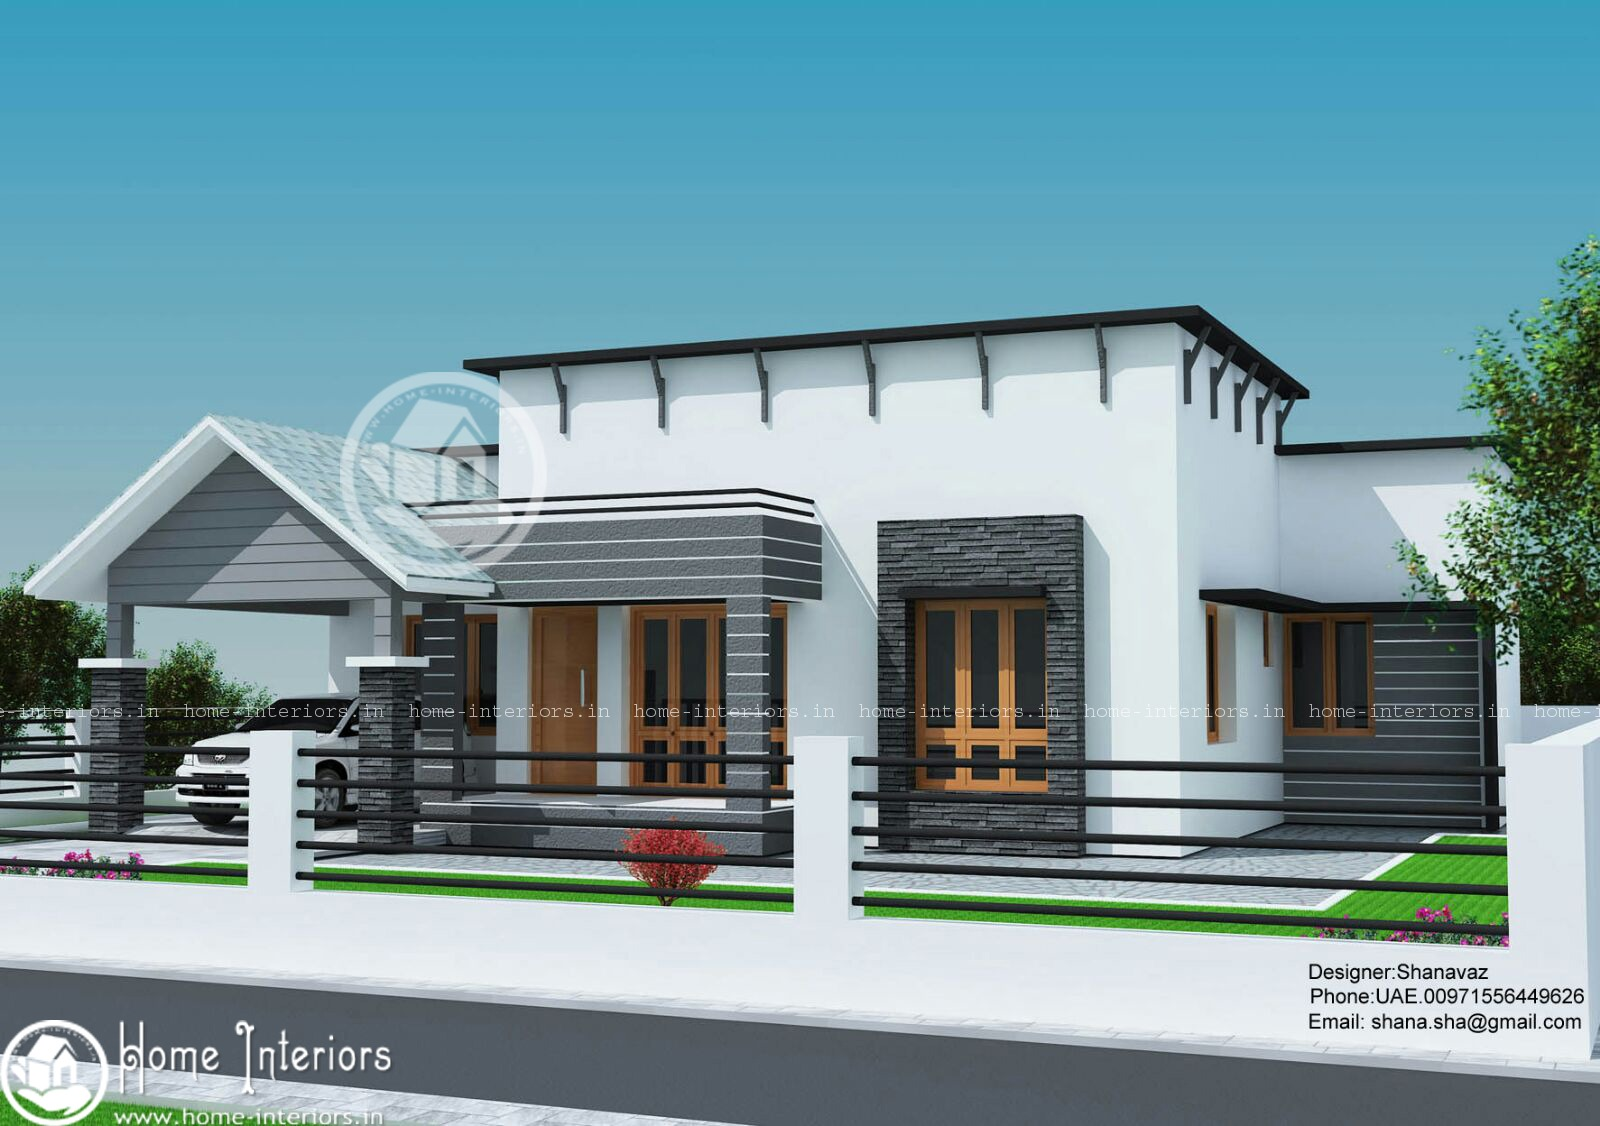 1300 sq ft single floor contemporary home design for One floor modern house plans